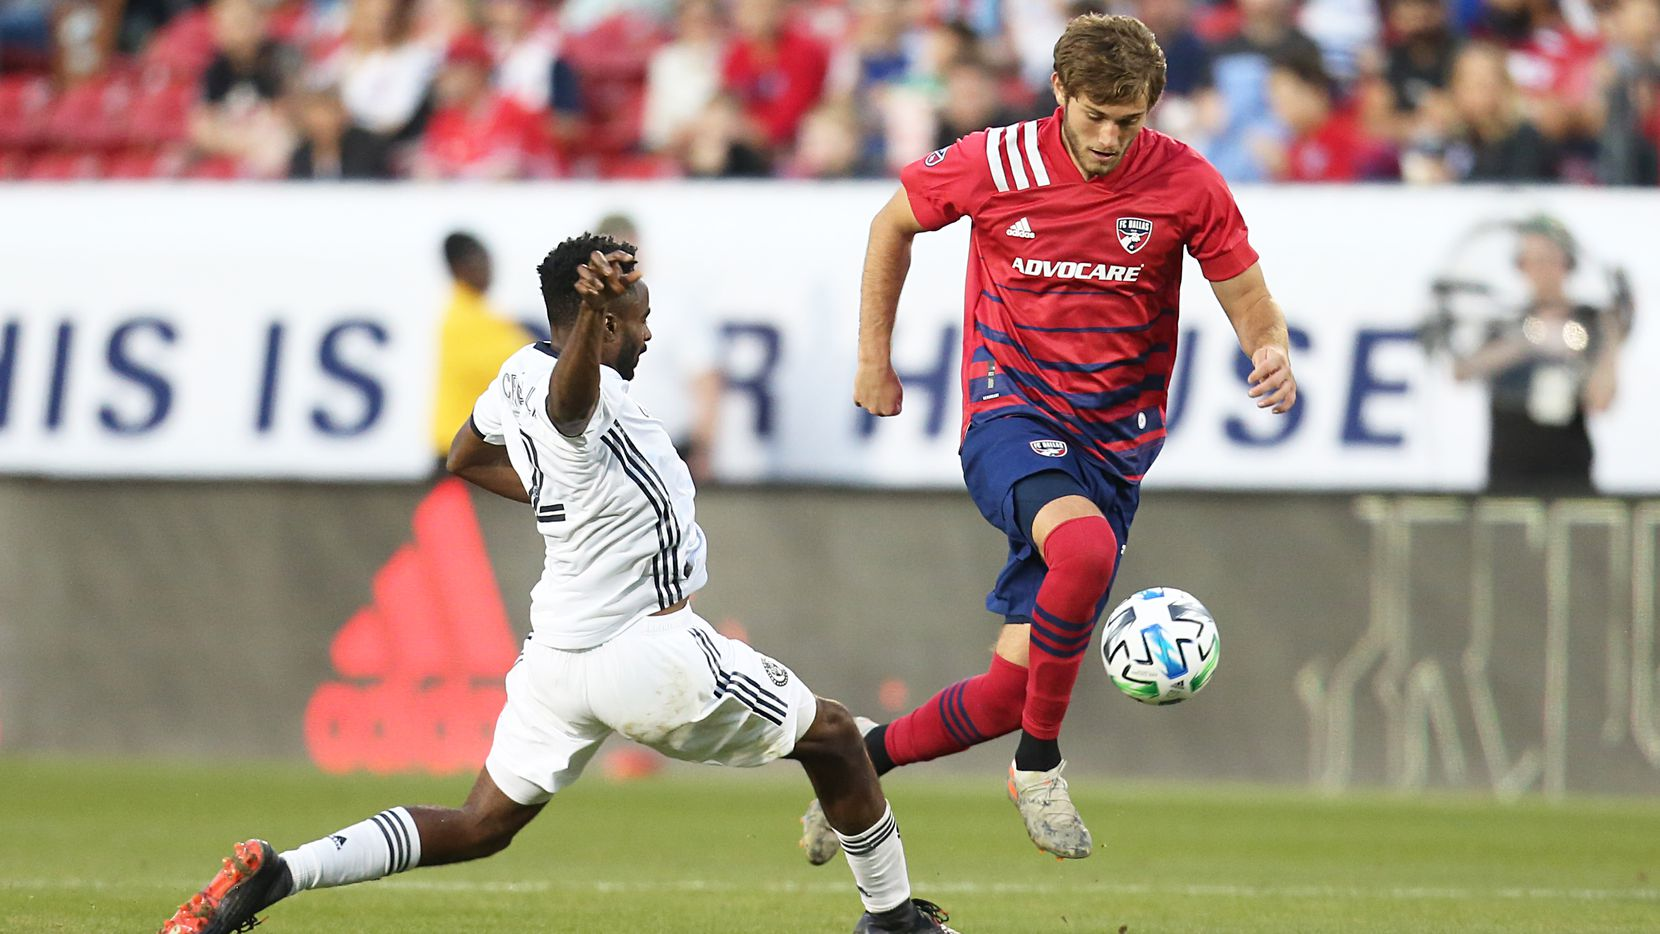 FRISCO, TX: Tanner Tessmann #15 of FC Dallas controls the ball during first season MLS 2020 match between FC Dallas and Philadelphia Union at Toyota Stadium on February 29, 2020 in Frisco, Texas.